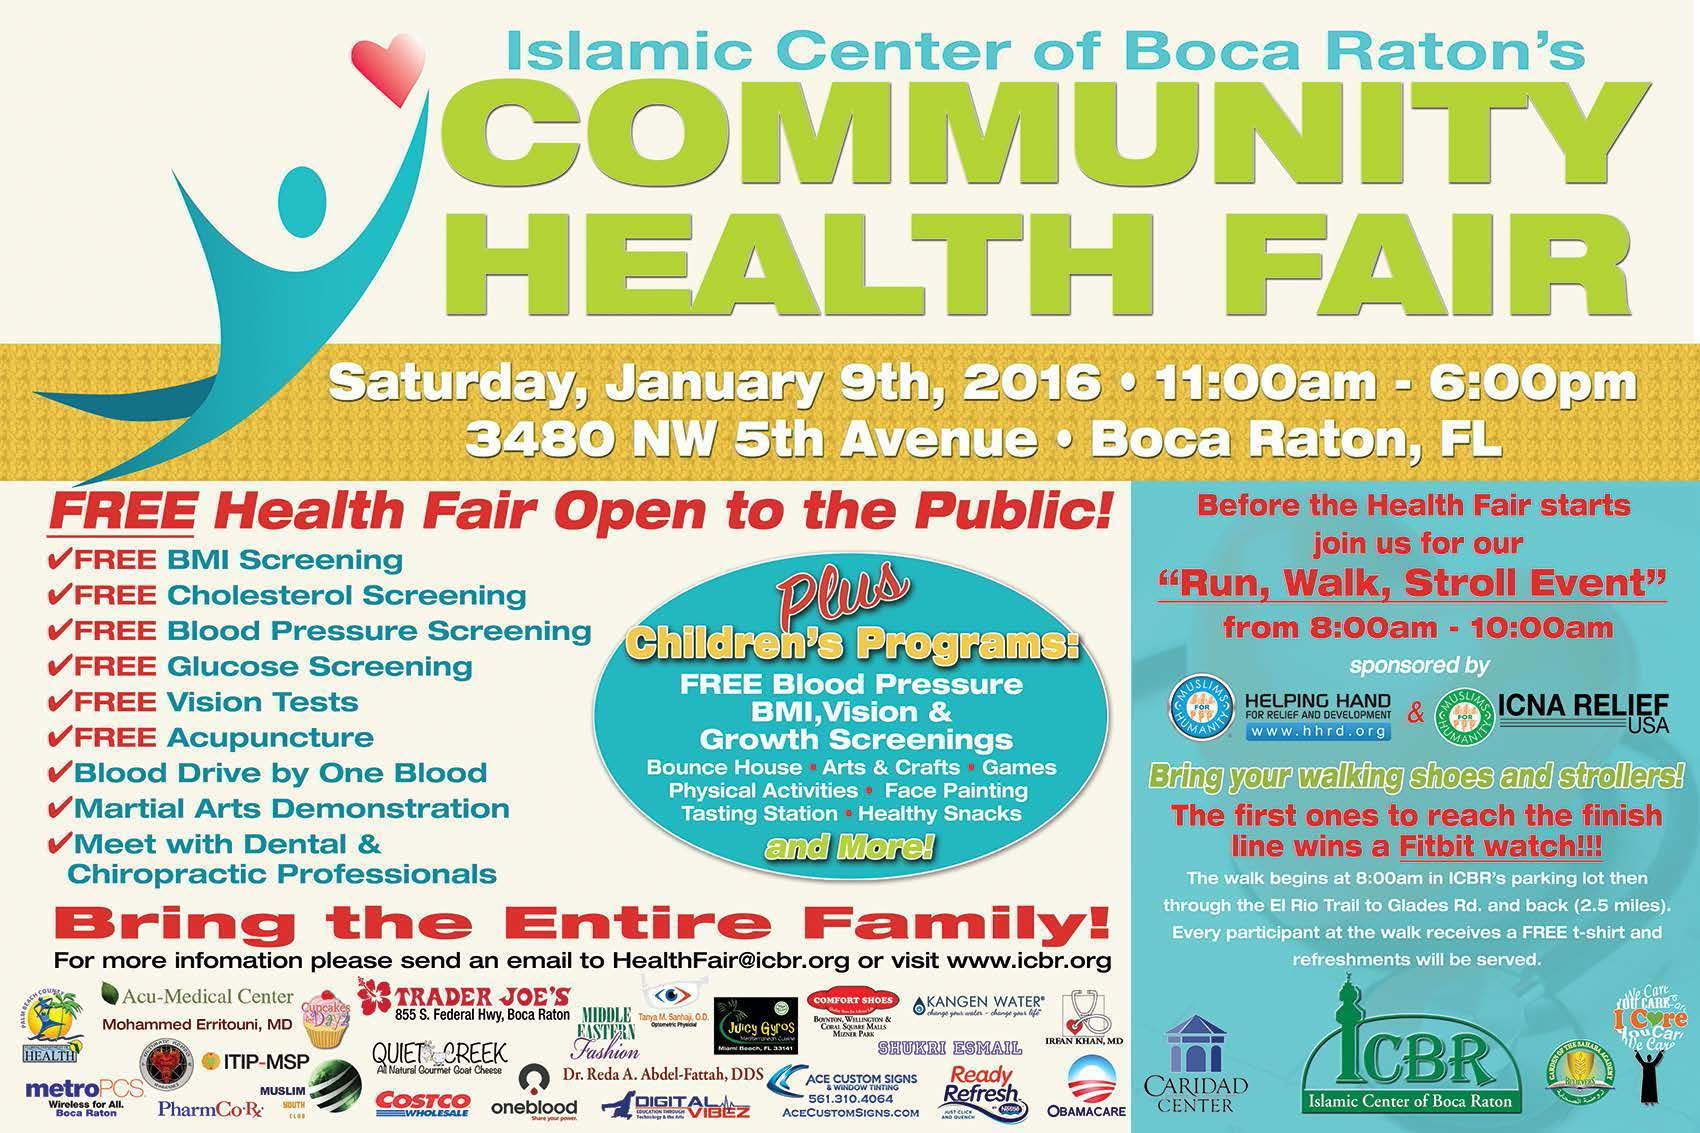 icbr 5th annual community health fair islamic center of